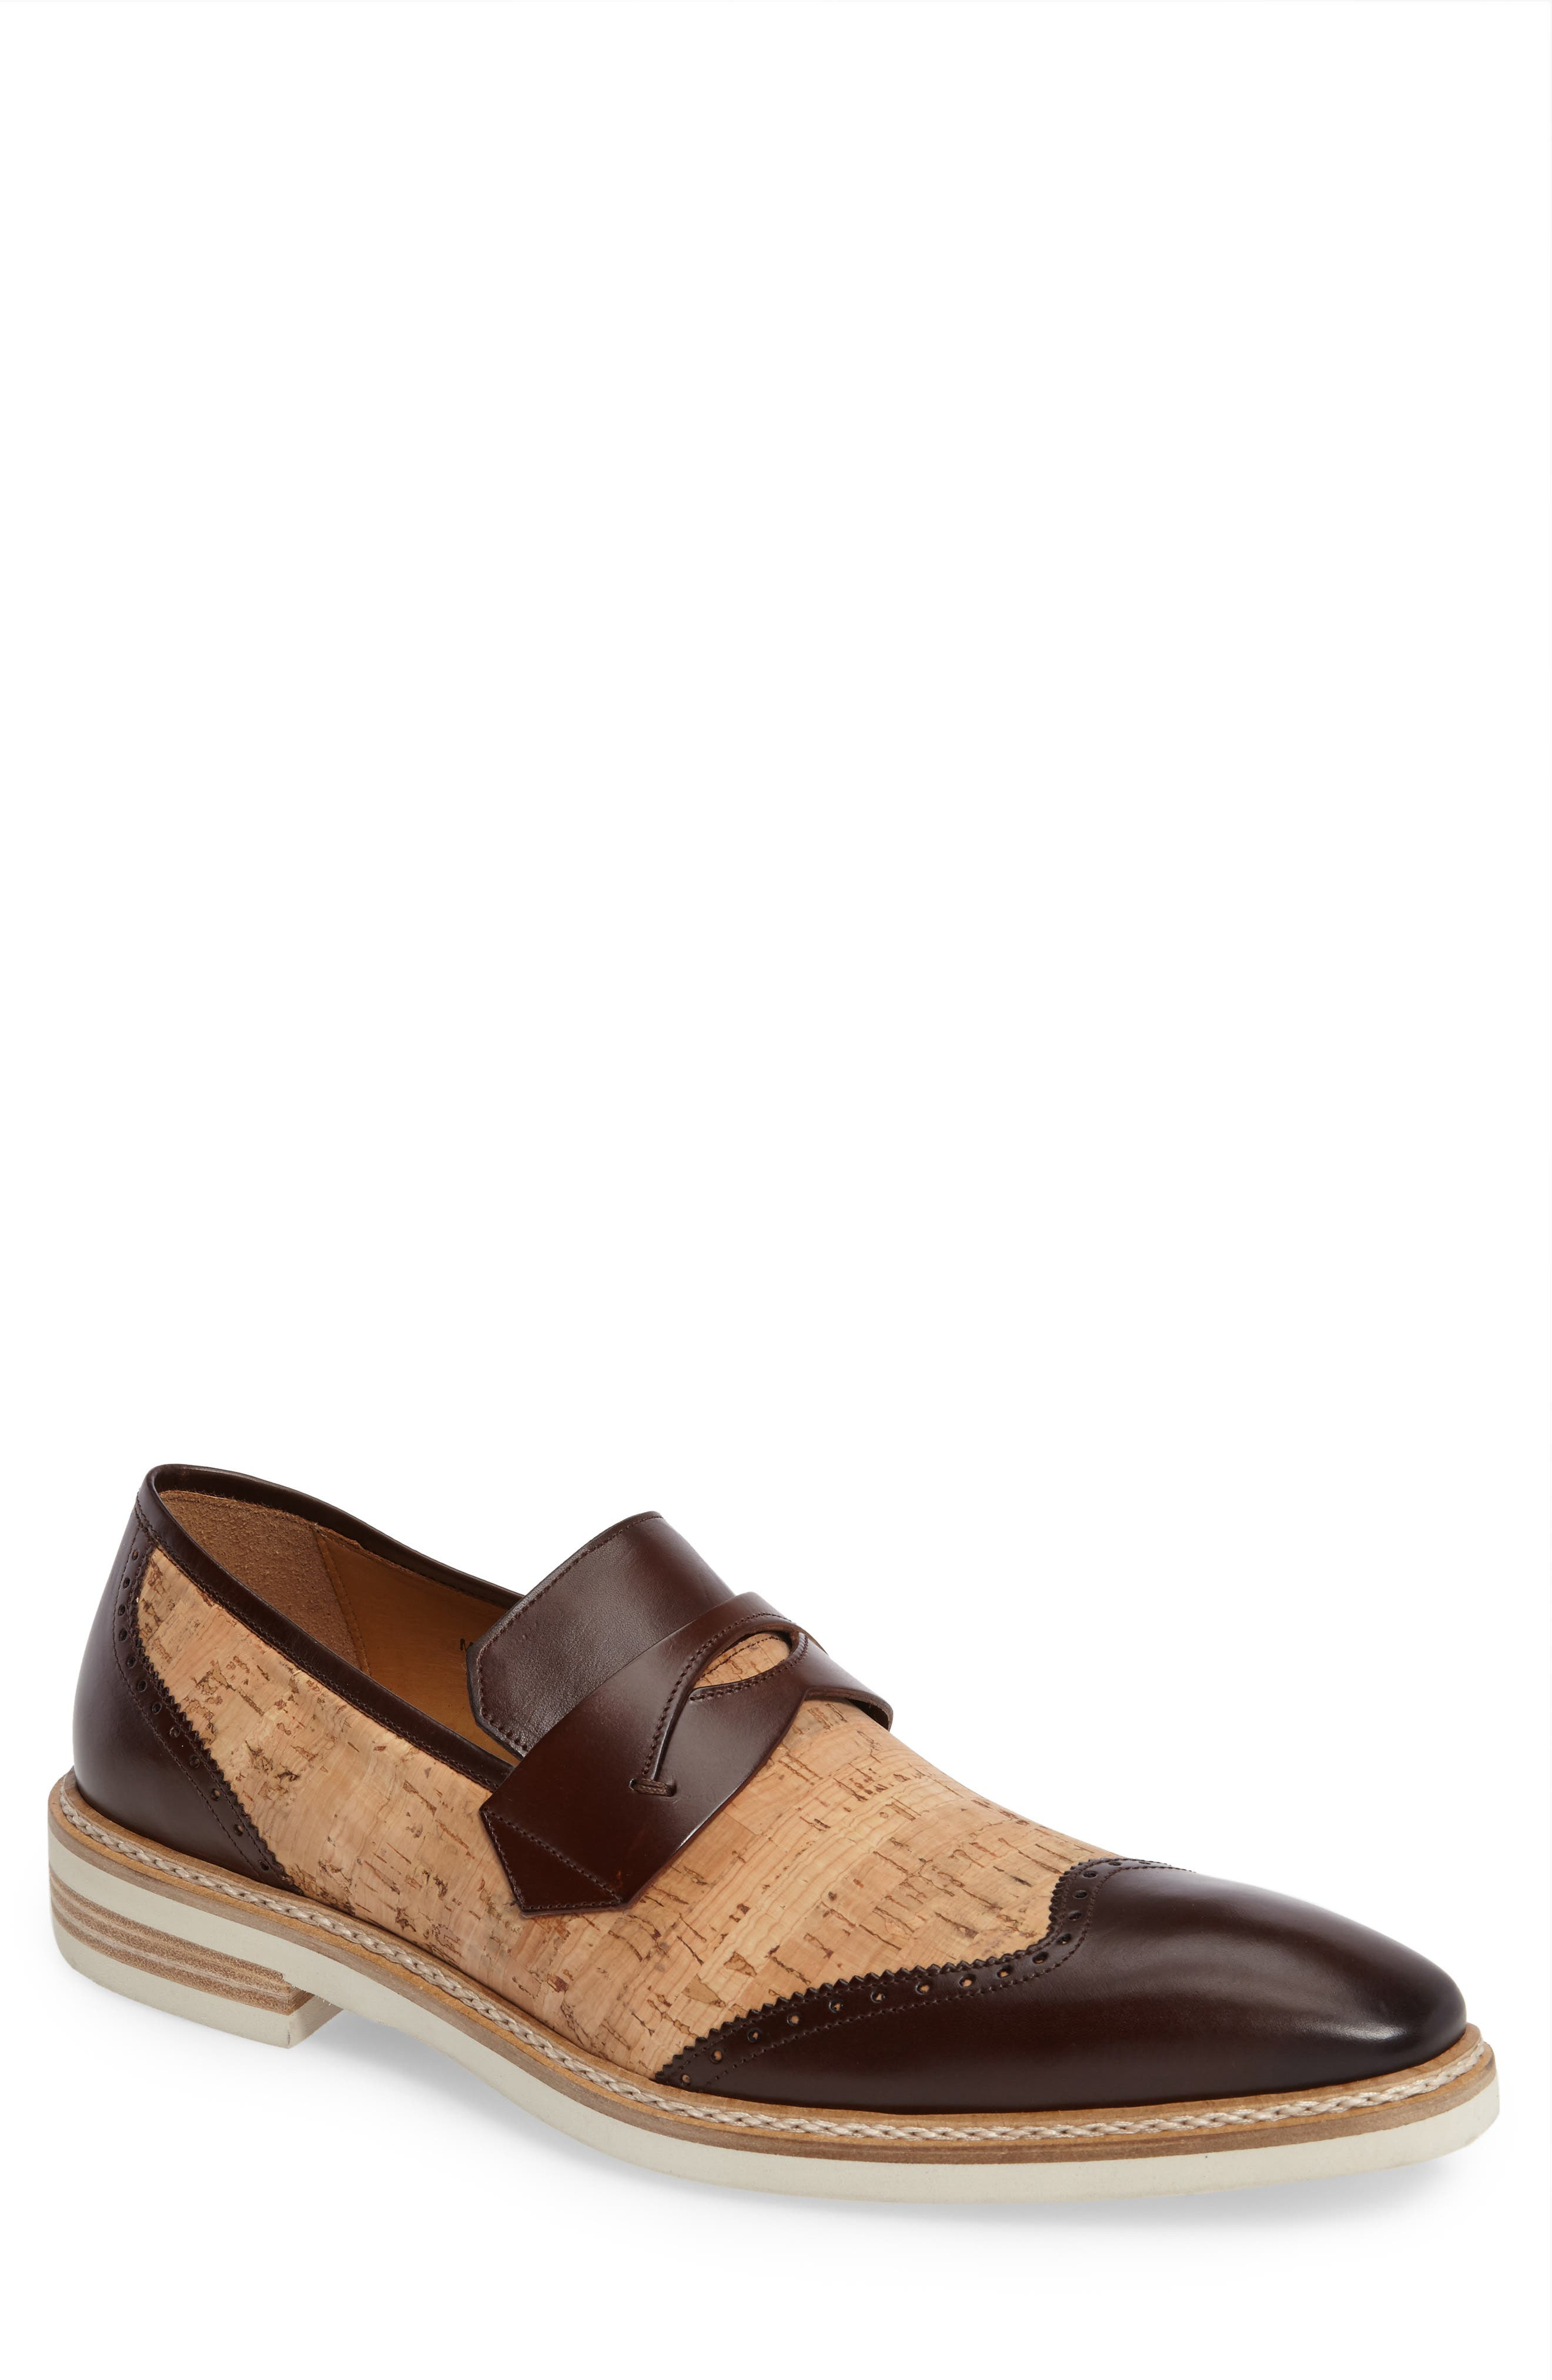 Alternate Image 1 Selected - Mezlan Redi Venetian Loafer (Men)